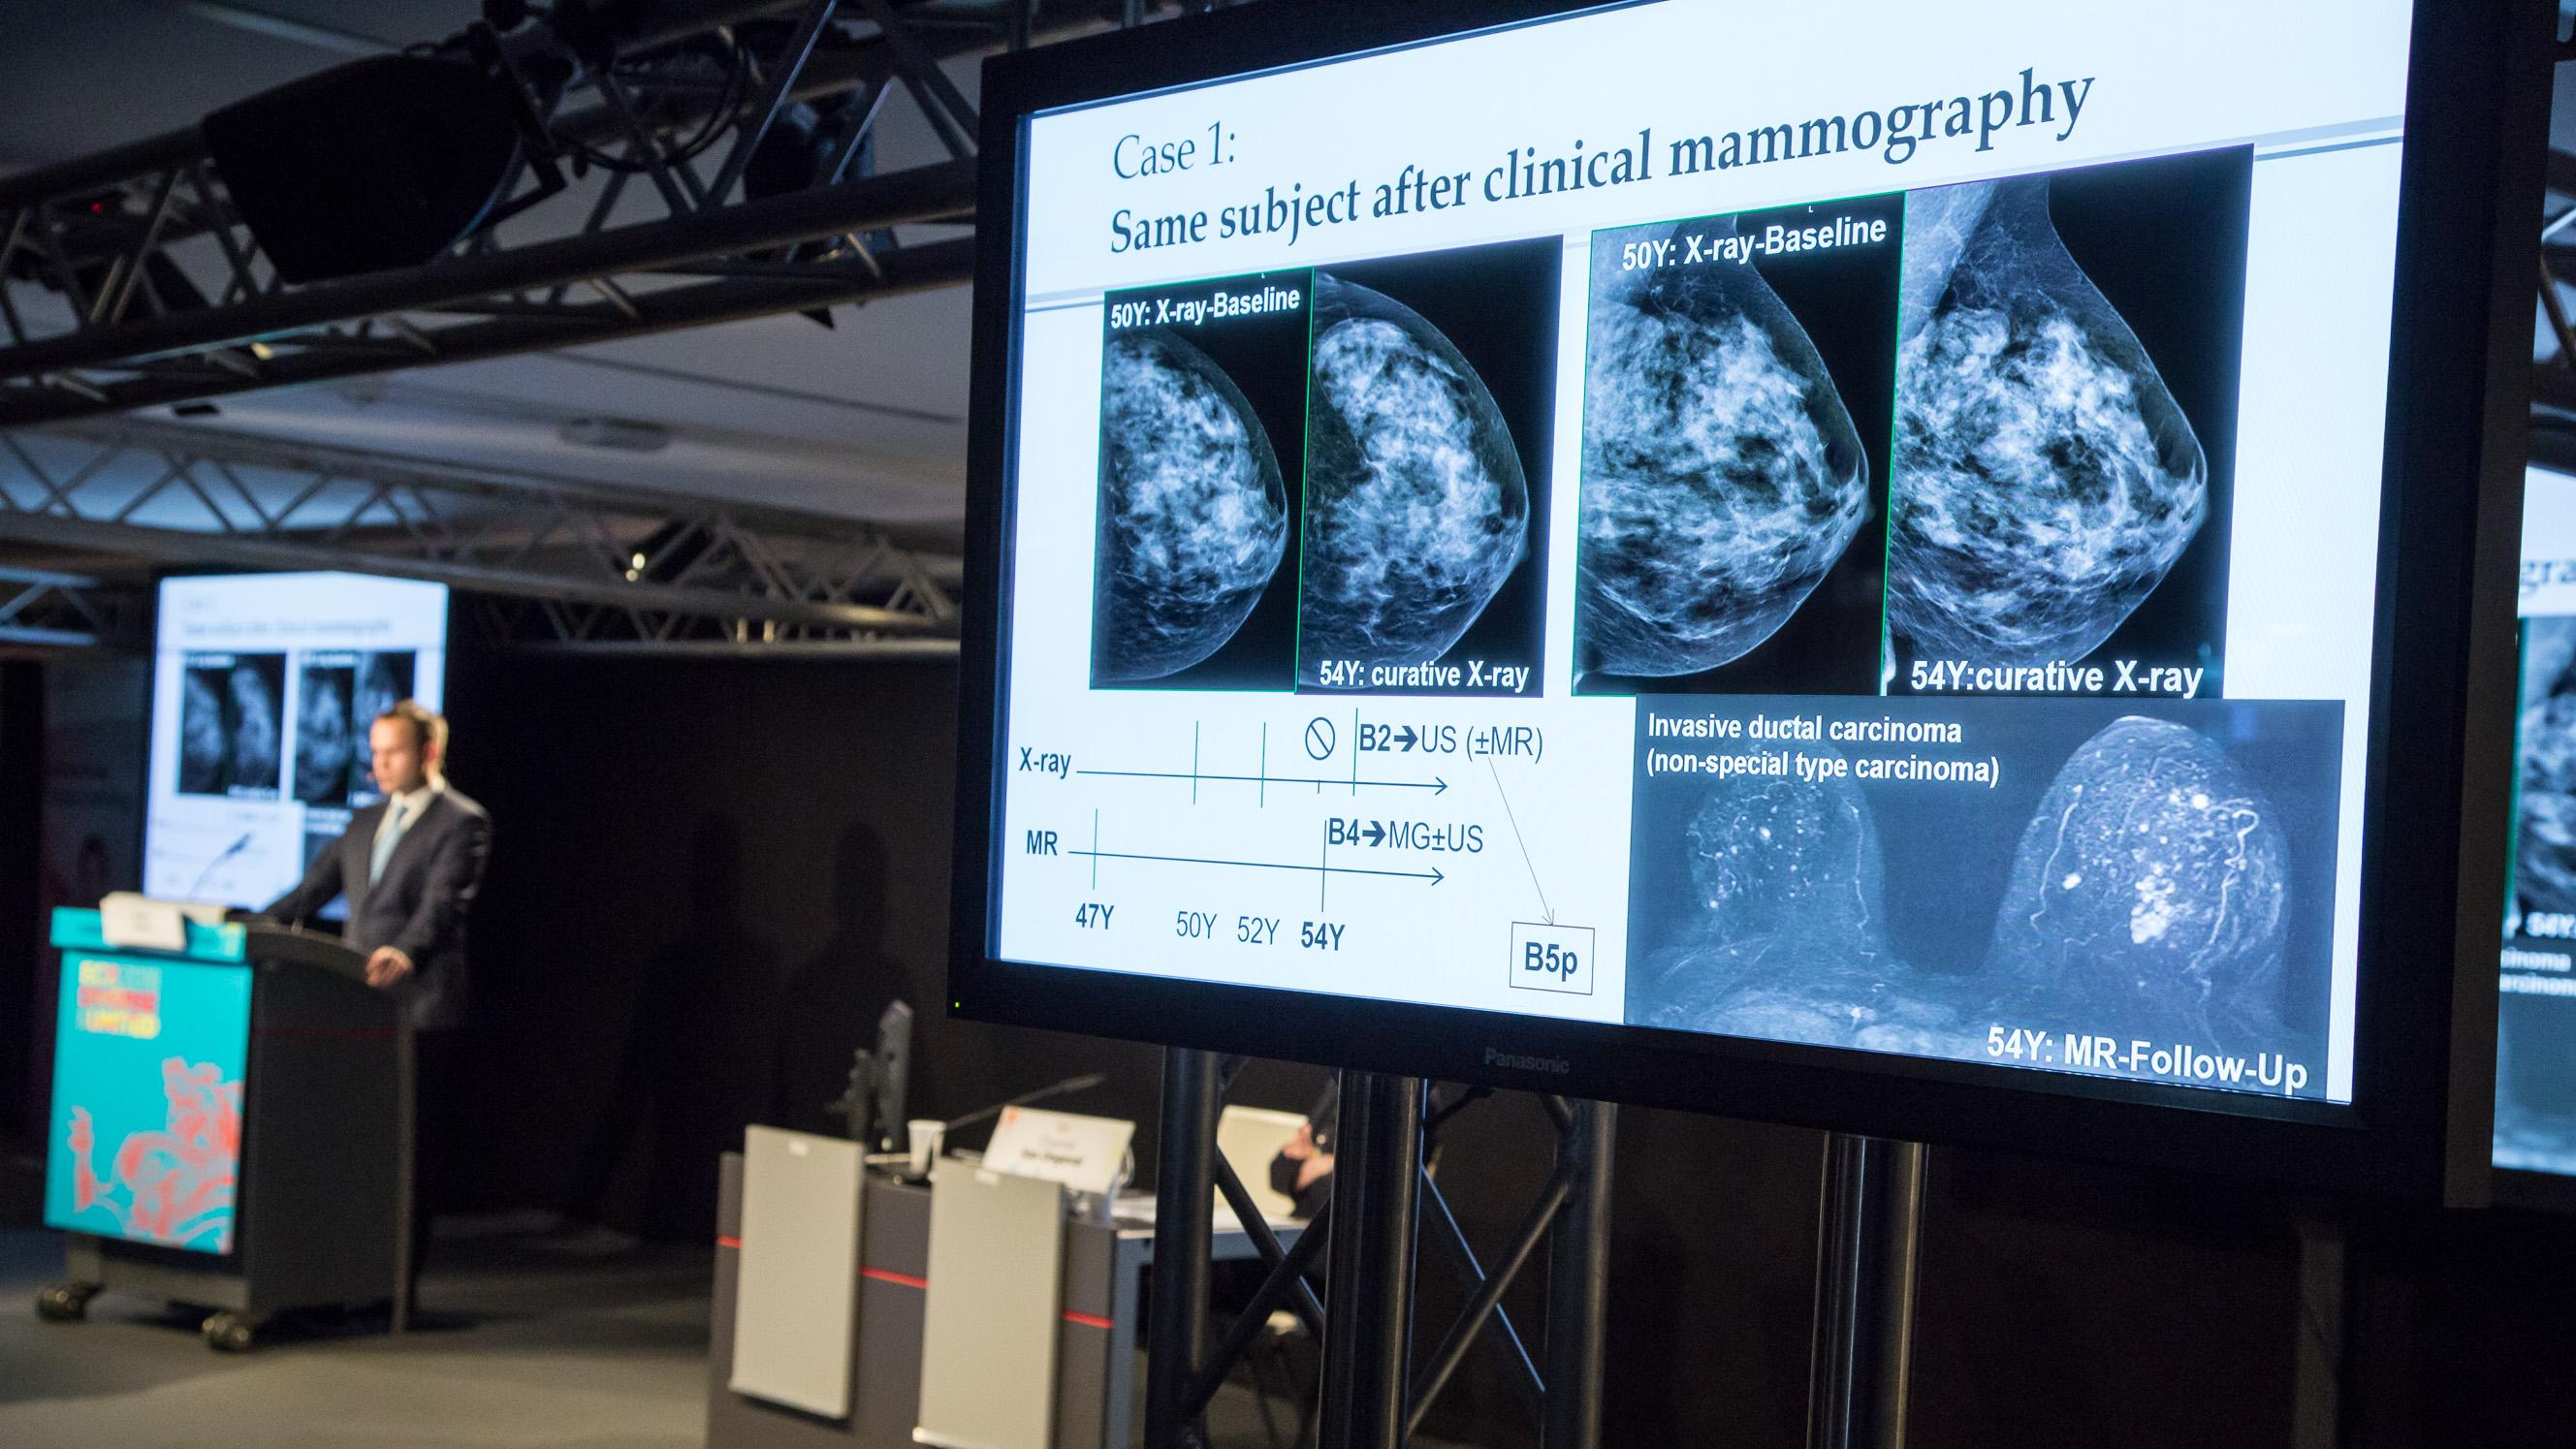 Although tomosynthesis – or 3D mammography – has only recently emerged as a promising tool in breast cancer detection, image acquisition and interpretation strategies are now being optimized through technological and reading workflow improvements.